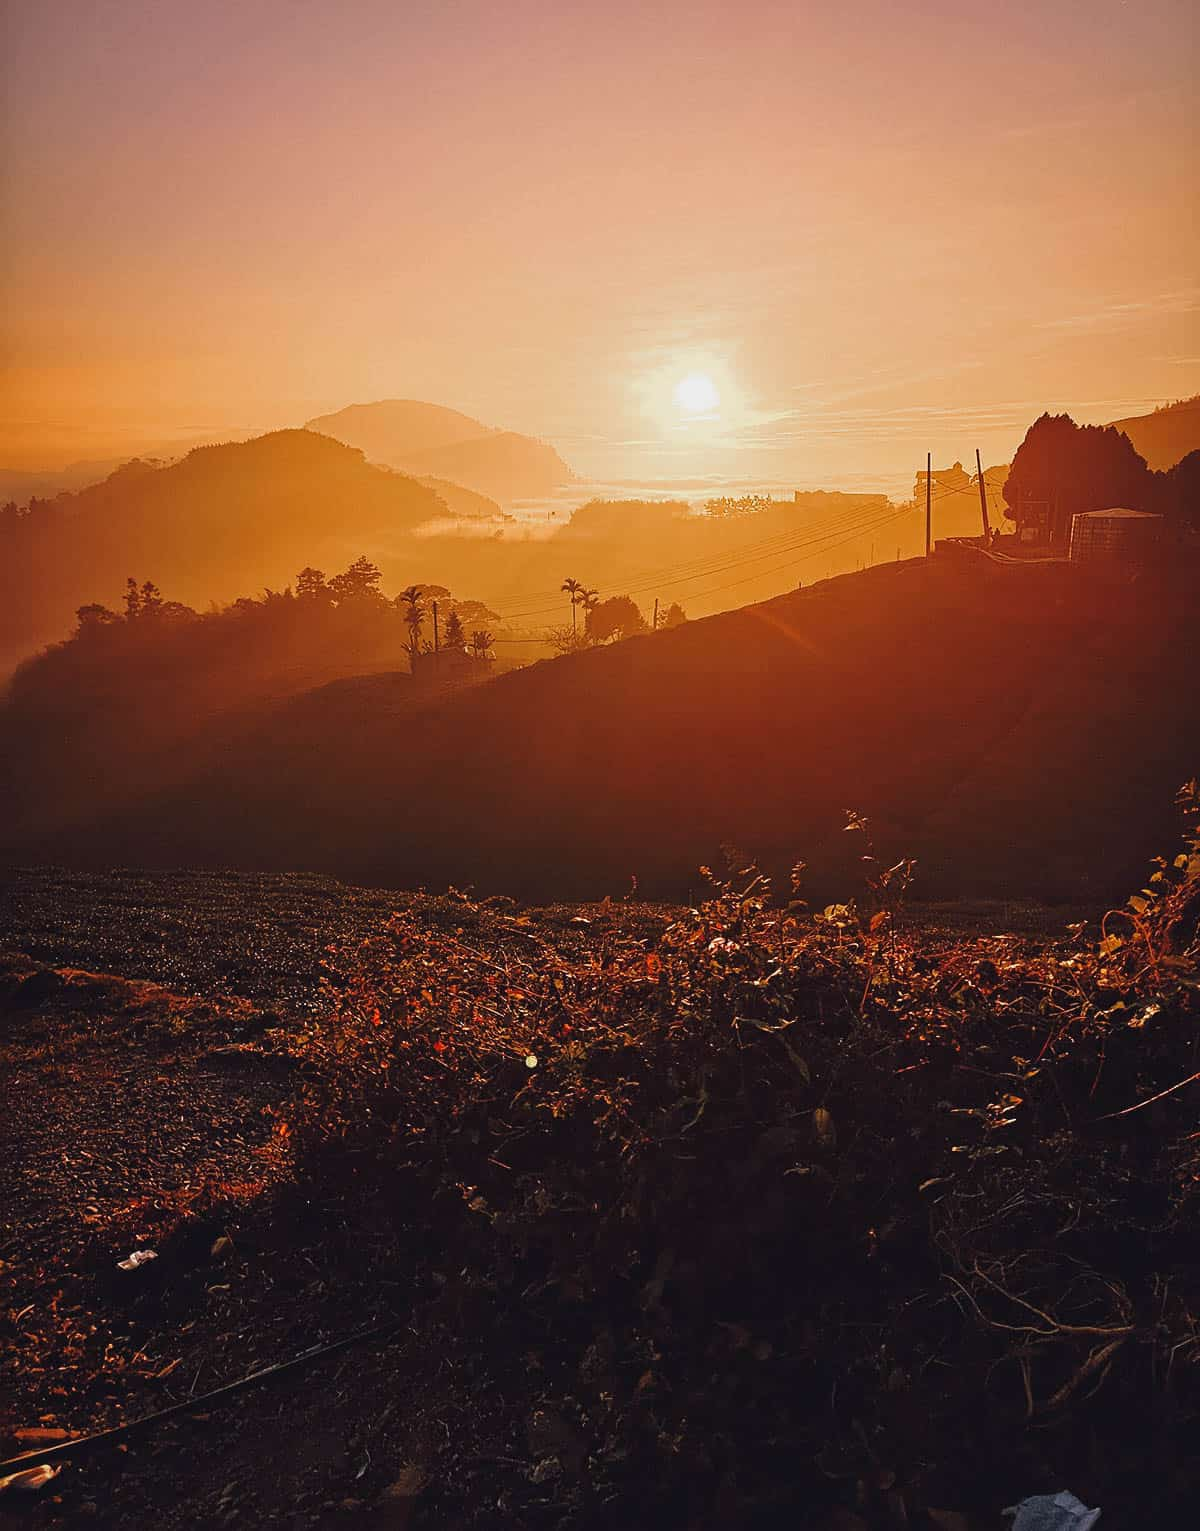 Sunset at Alishan National Scenic Area, Chiayi County, Taiwan